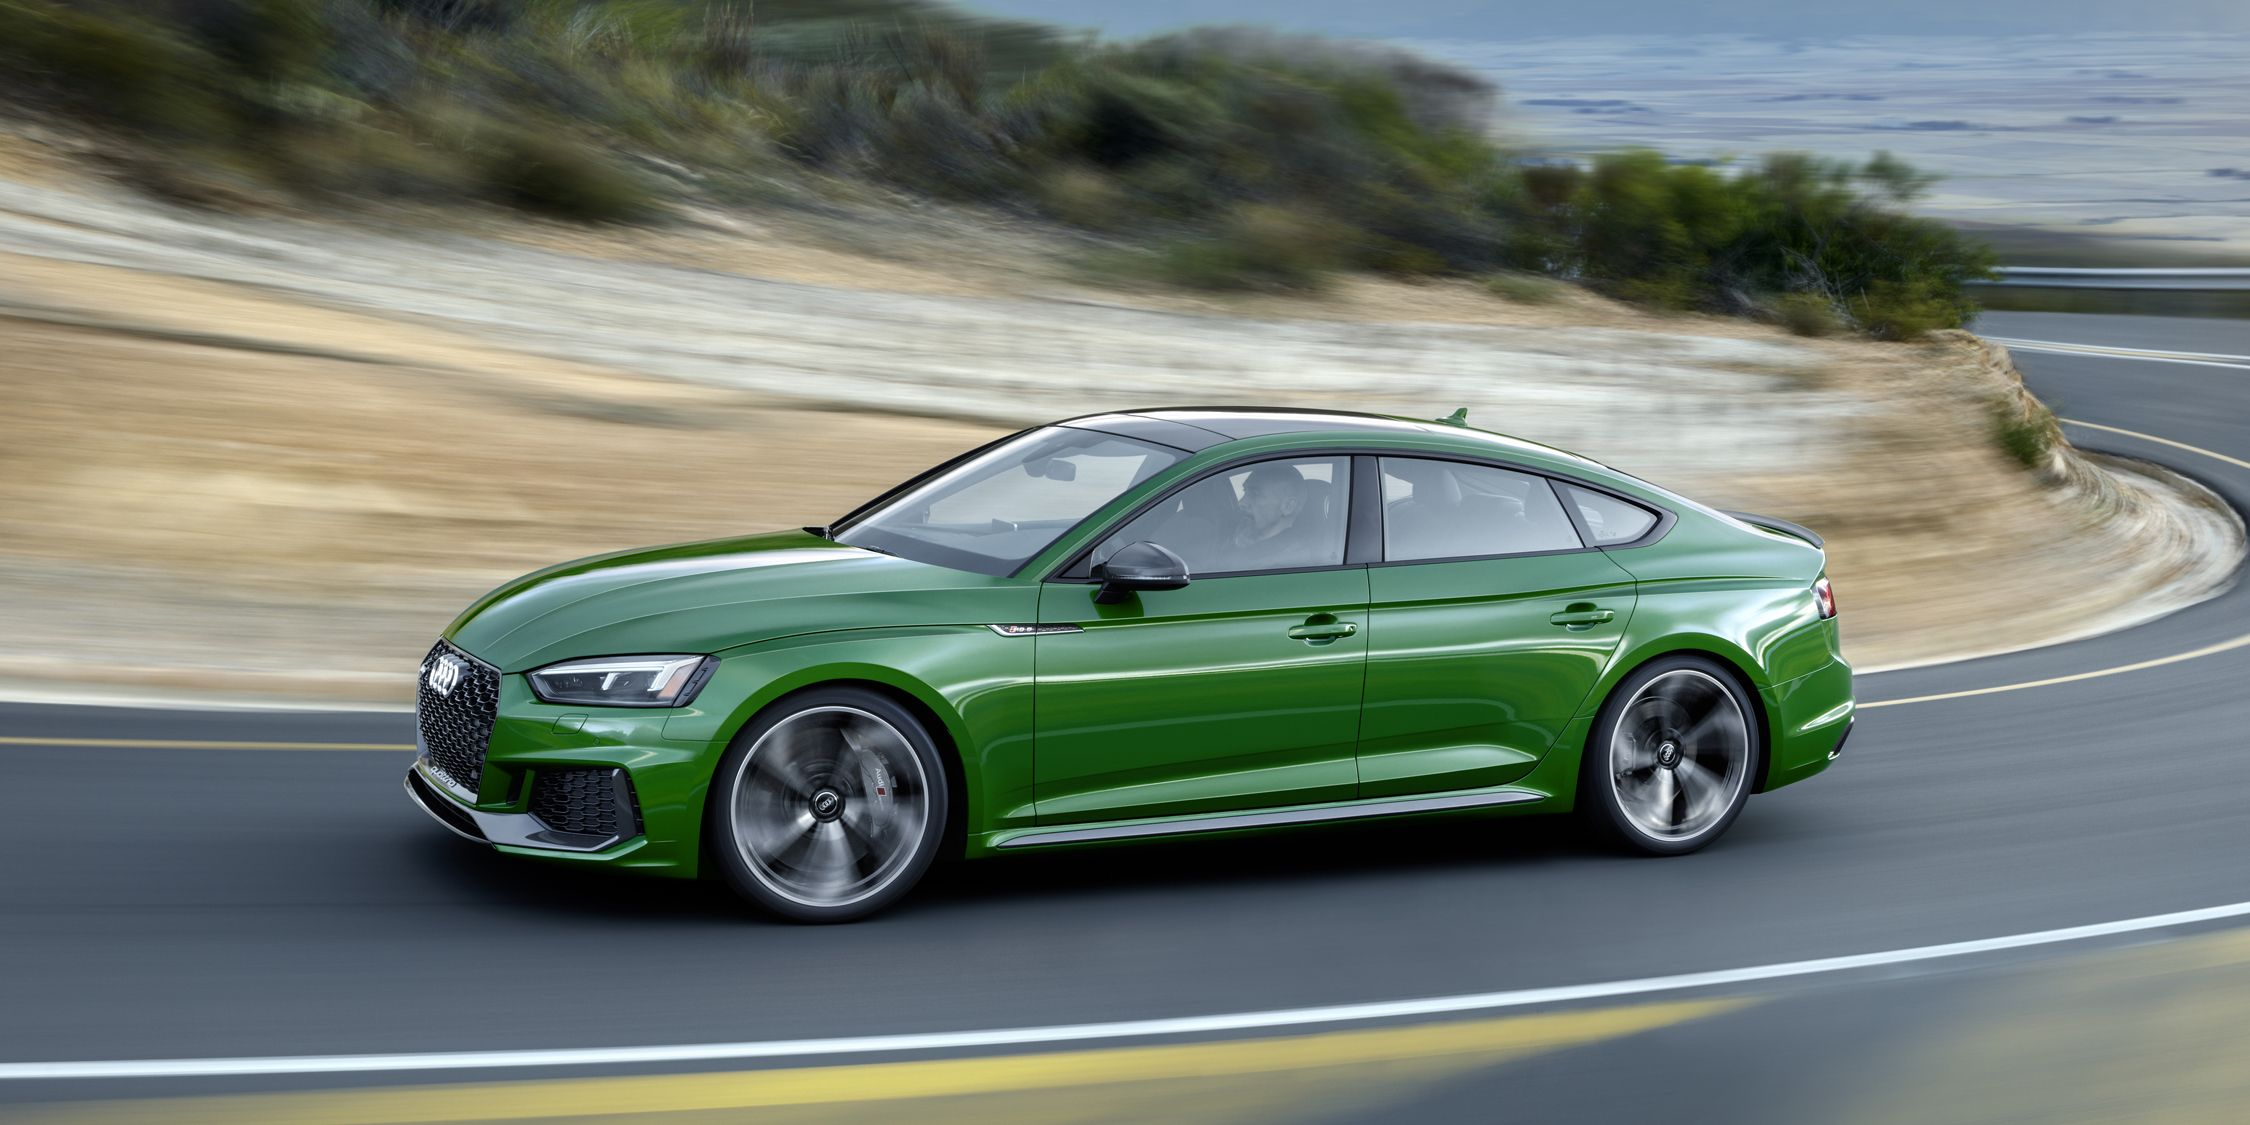 Audi Rs5 Sportback >> 2019 Audi Rs5 Sportback Official Photos And Information News Car